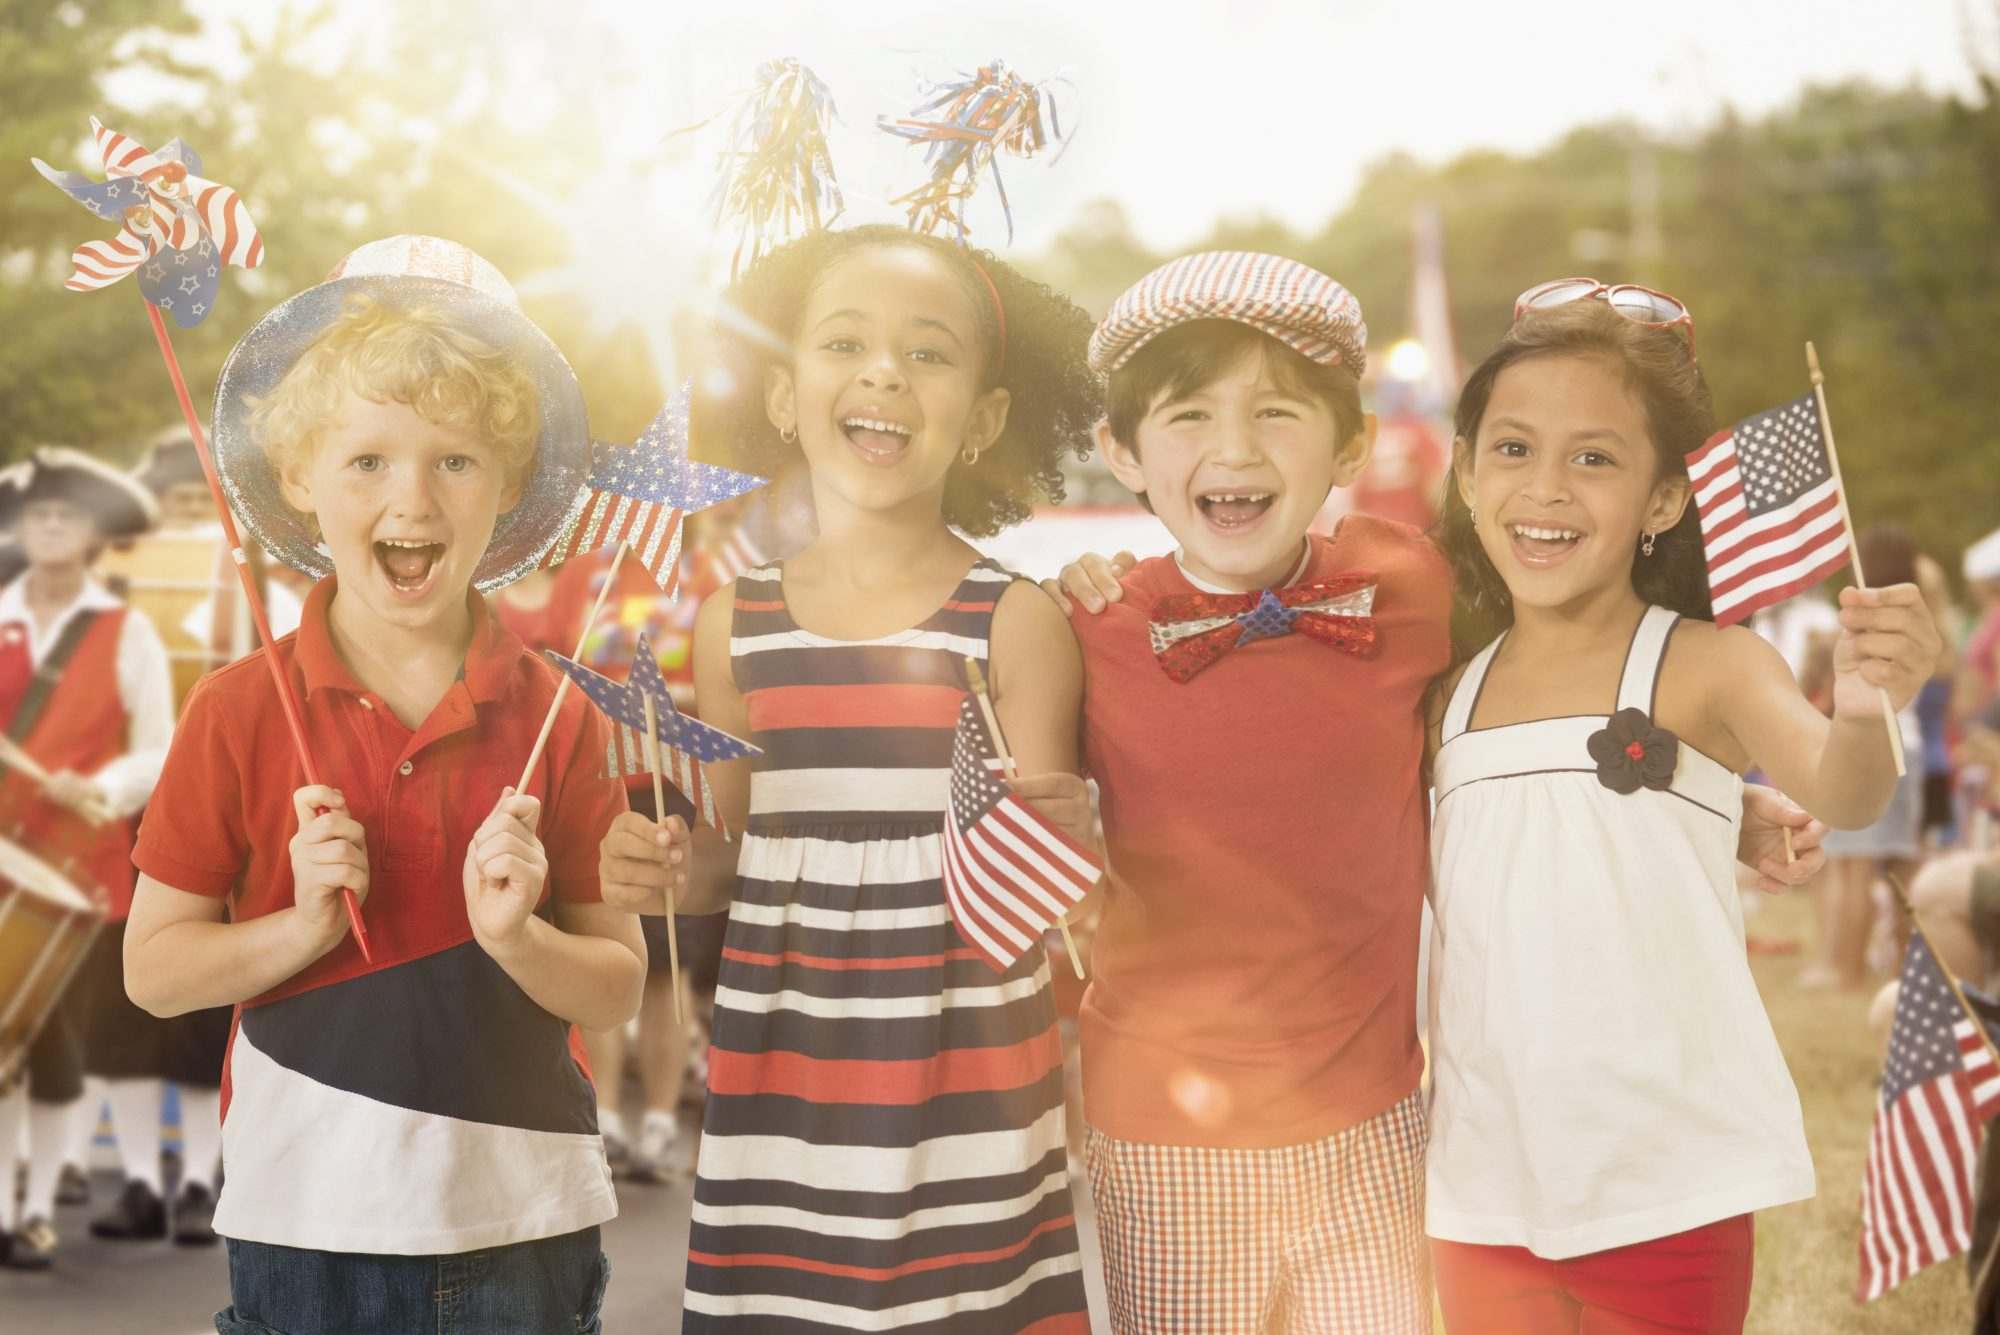 Kids Playing 4th of July Games